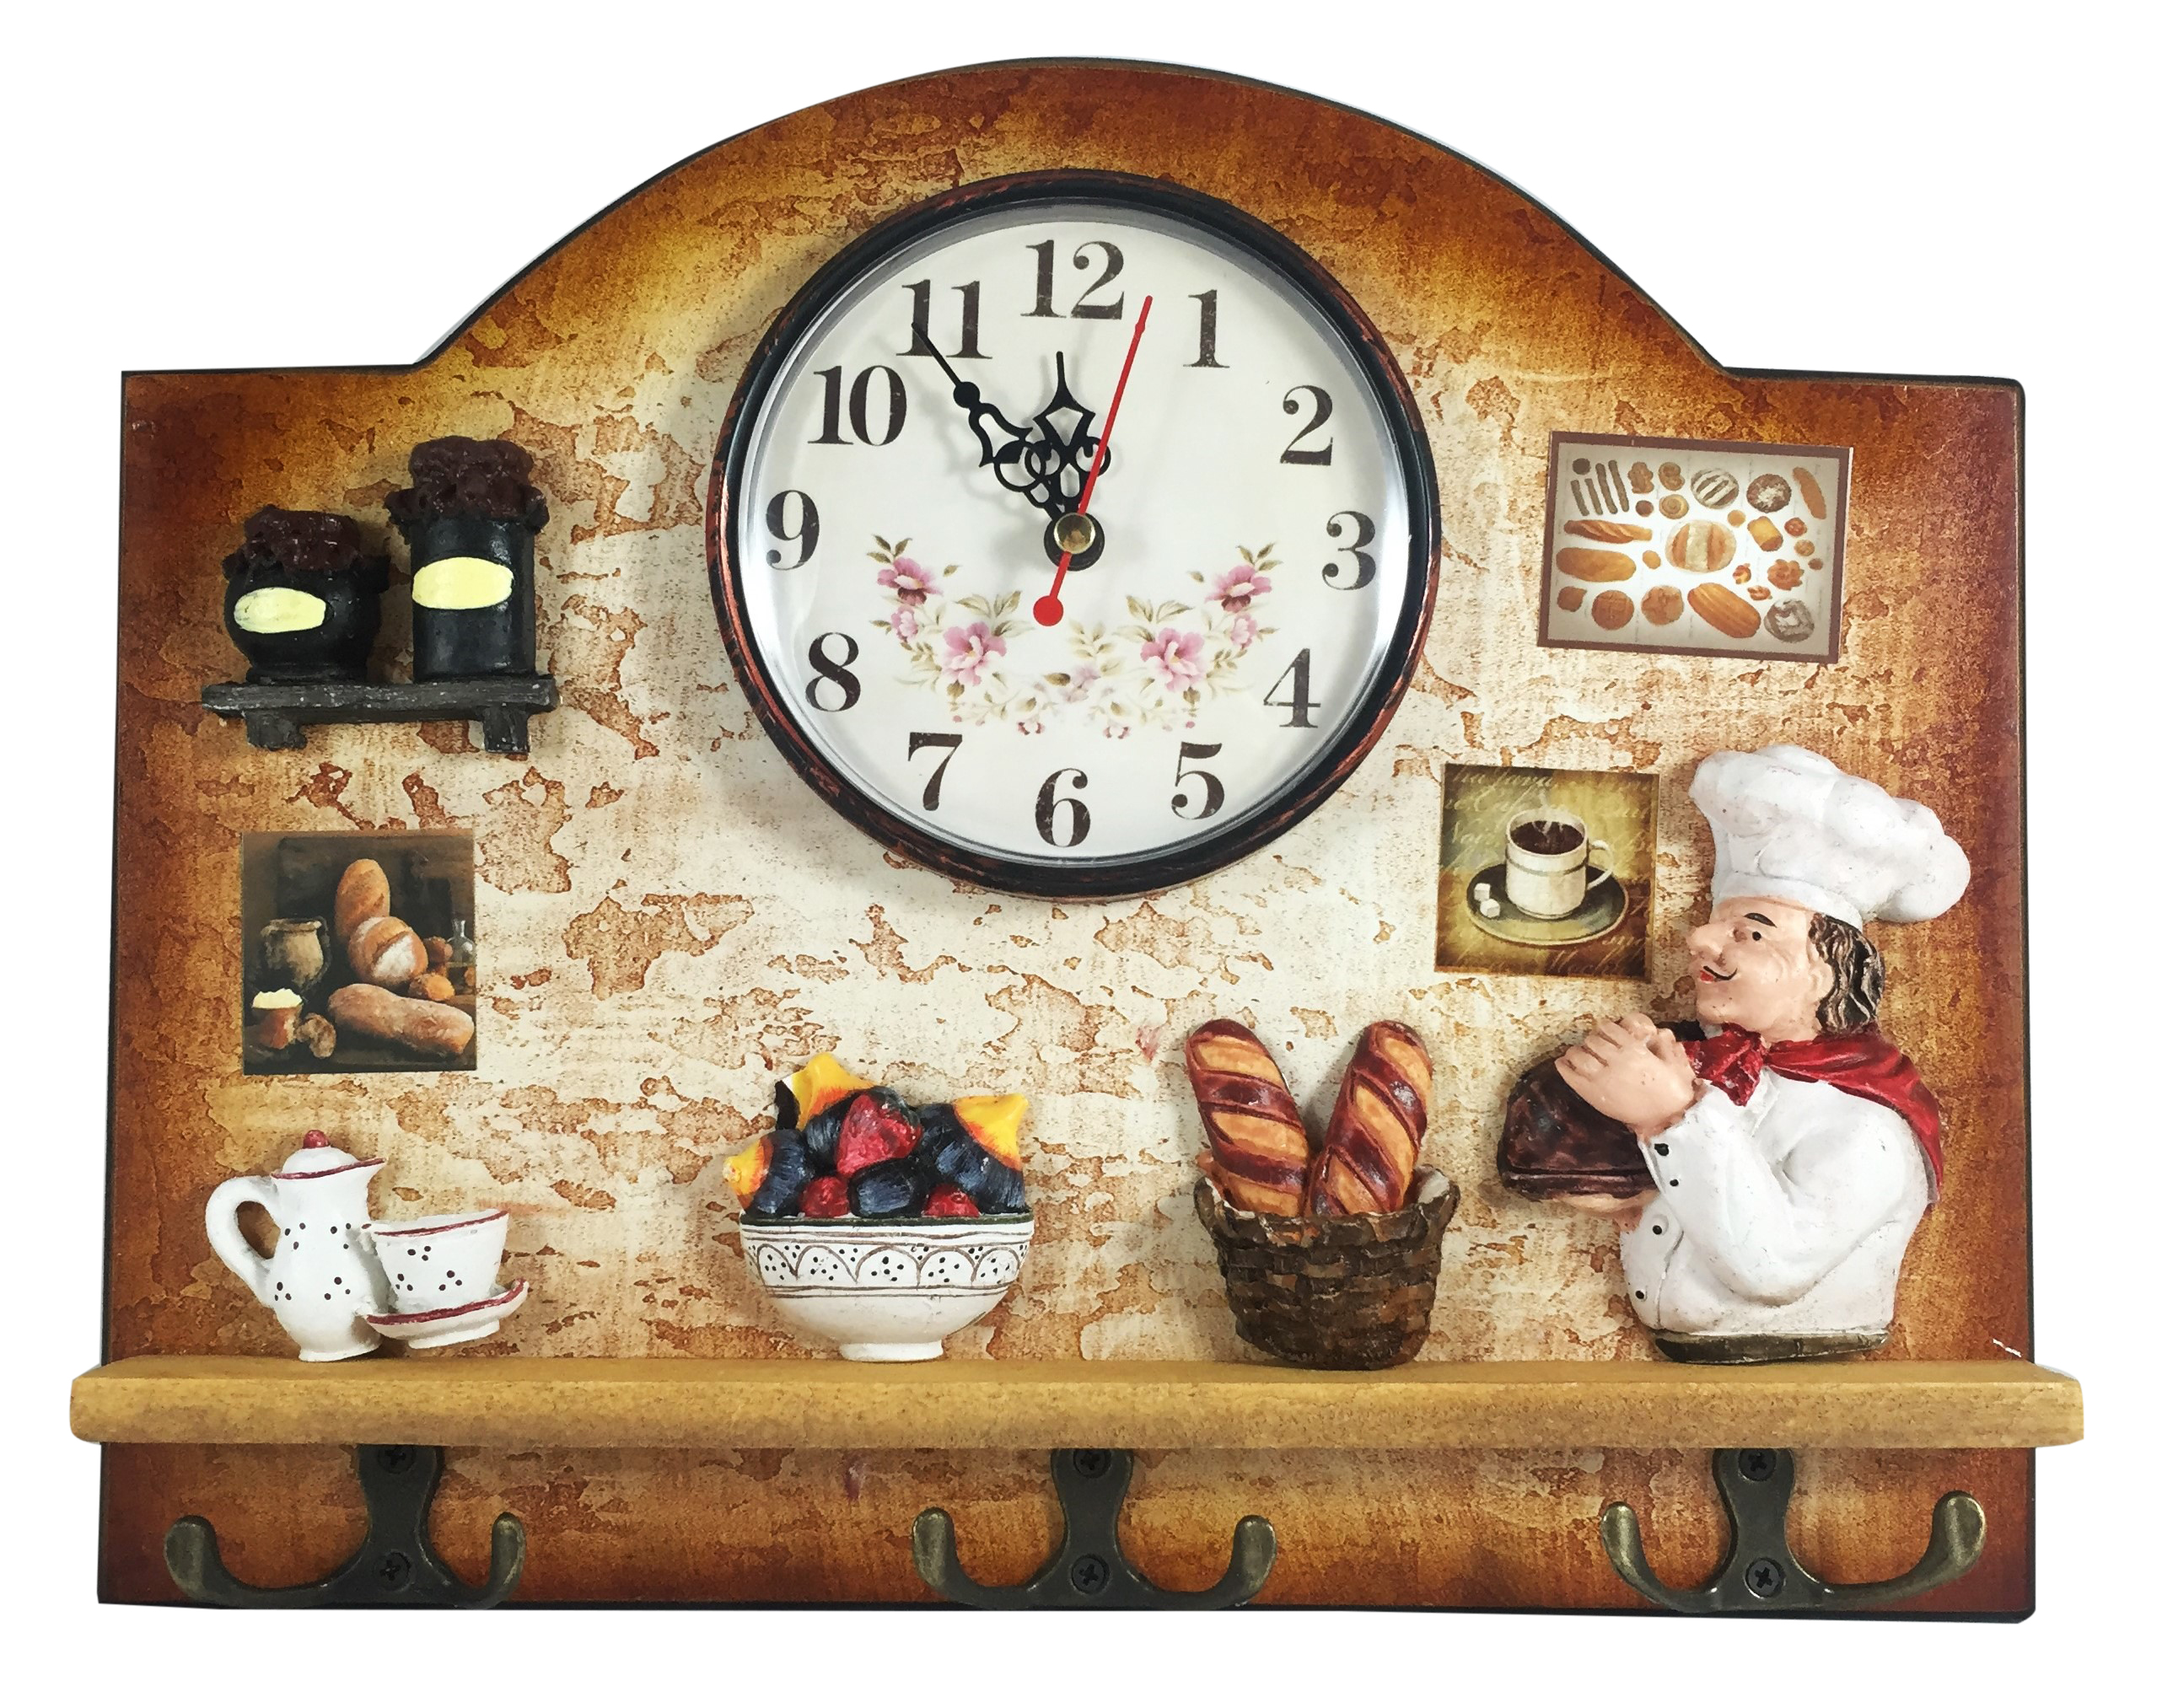 Heartful Home Italian Chef Wall Decor Clock With Key Holder Hooks   Unique  Gift Idea For